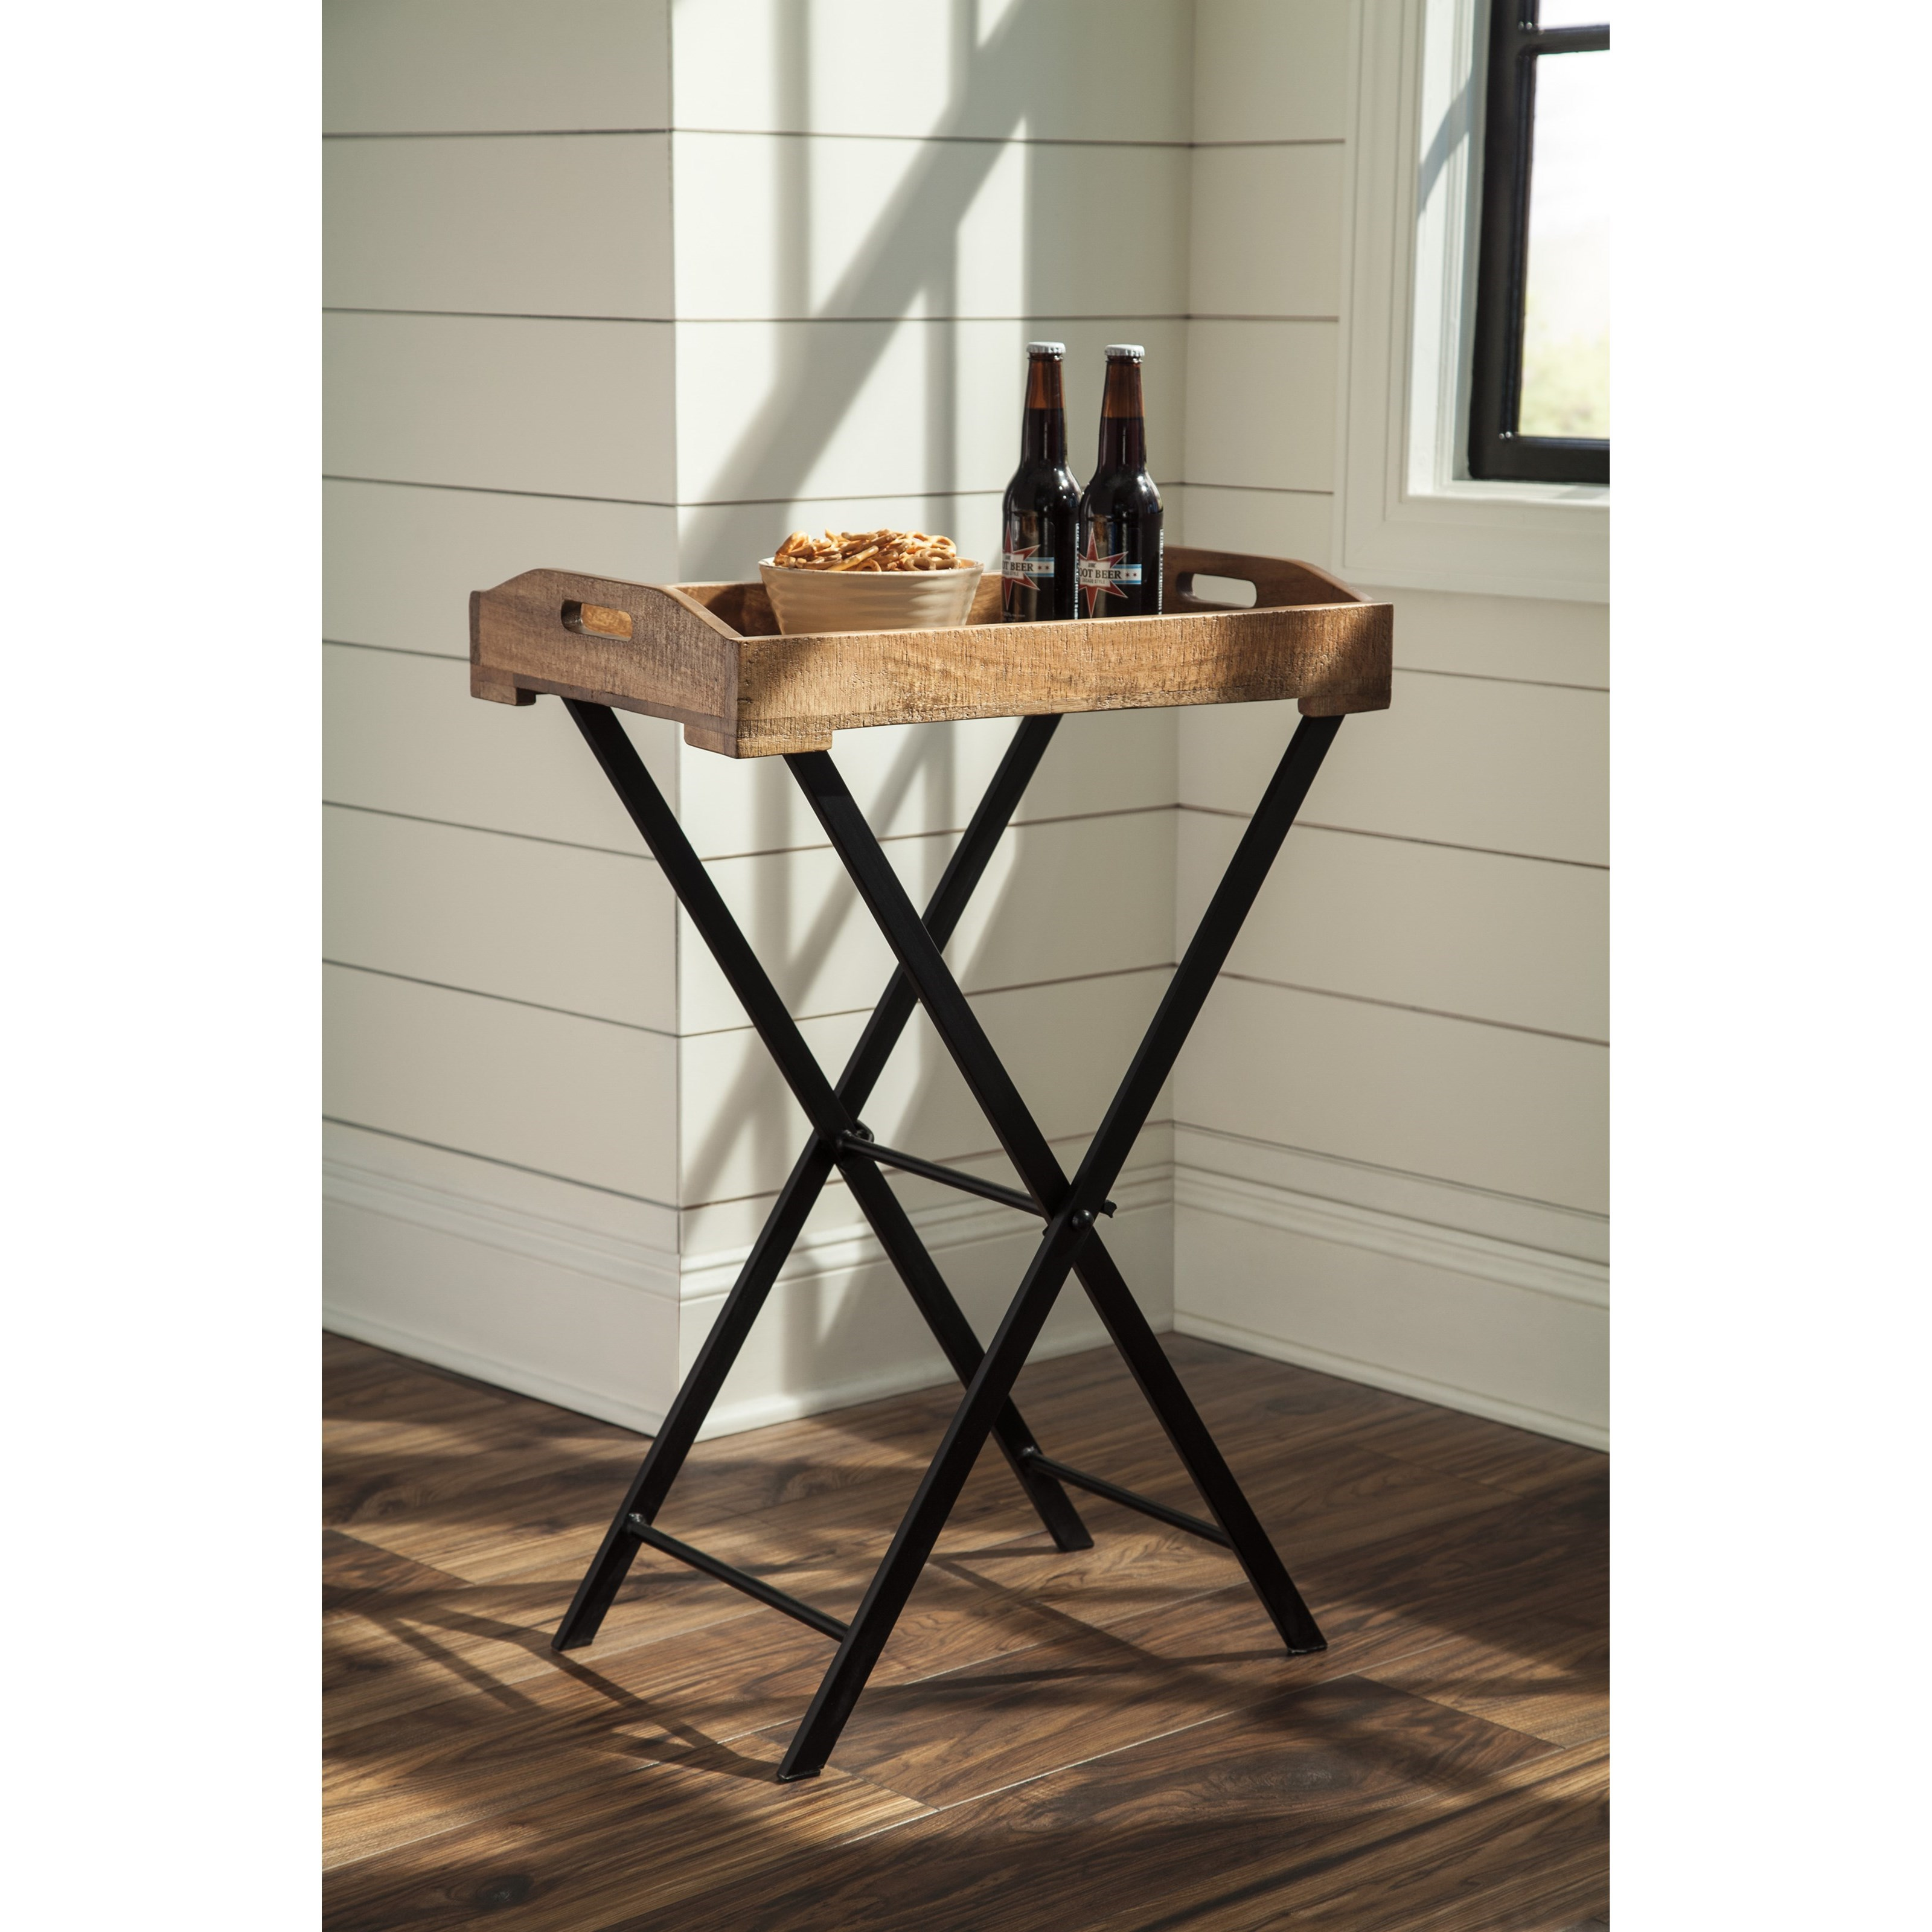 serving tray accent table signature design ashley wolf and products color cadocridge clamp lamp coffee centerpiece ideas round wicker chairs small tall jcp rugs antique side